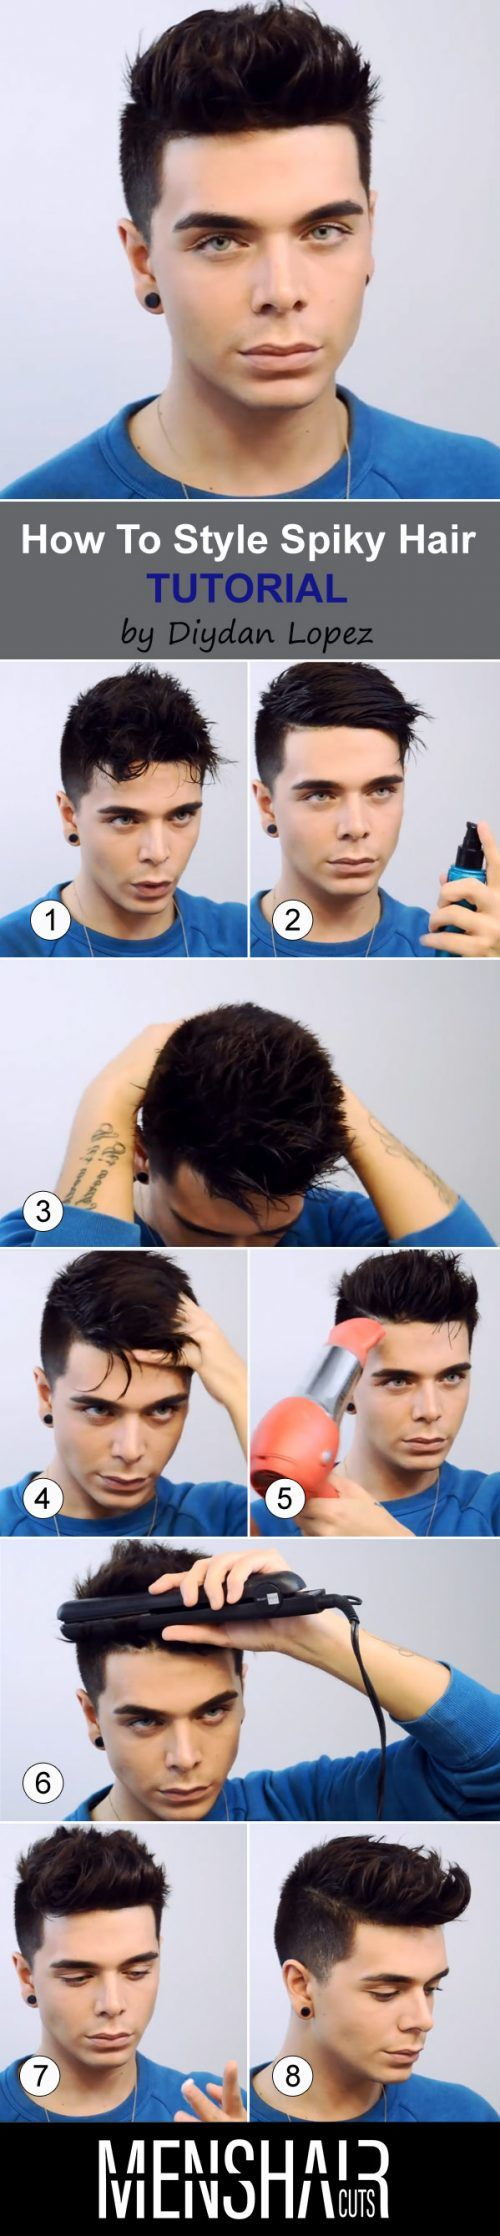 How To Style Spiky Hair #spikyhair #hairstyles